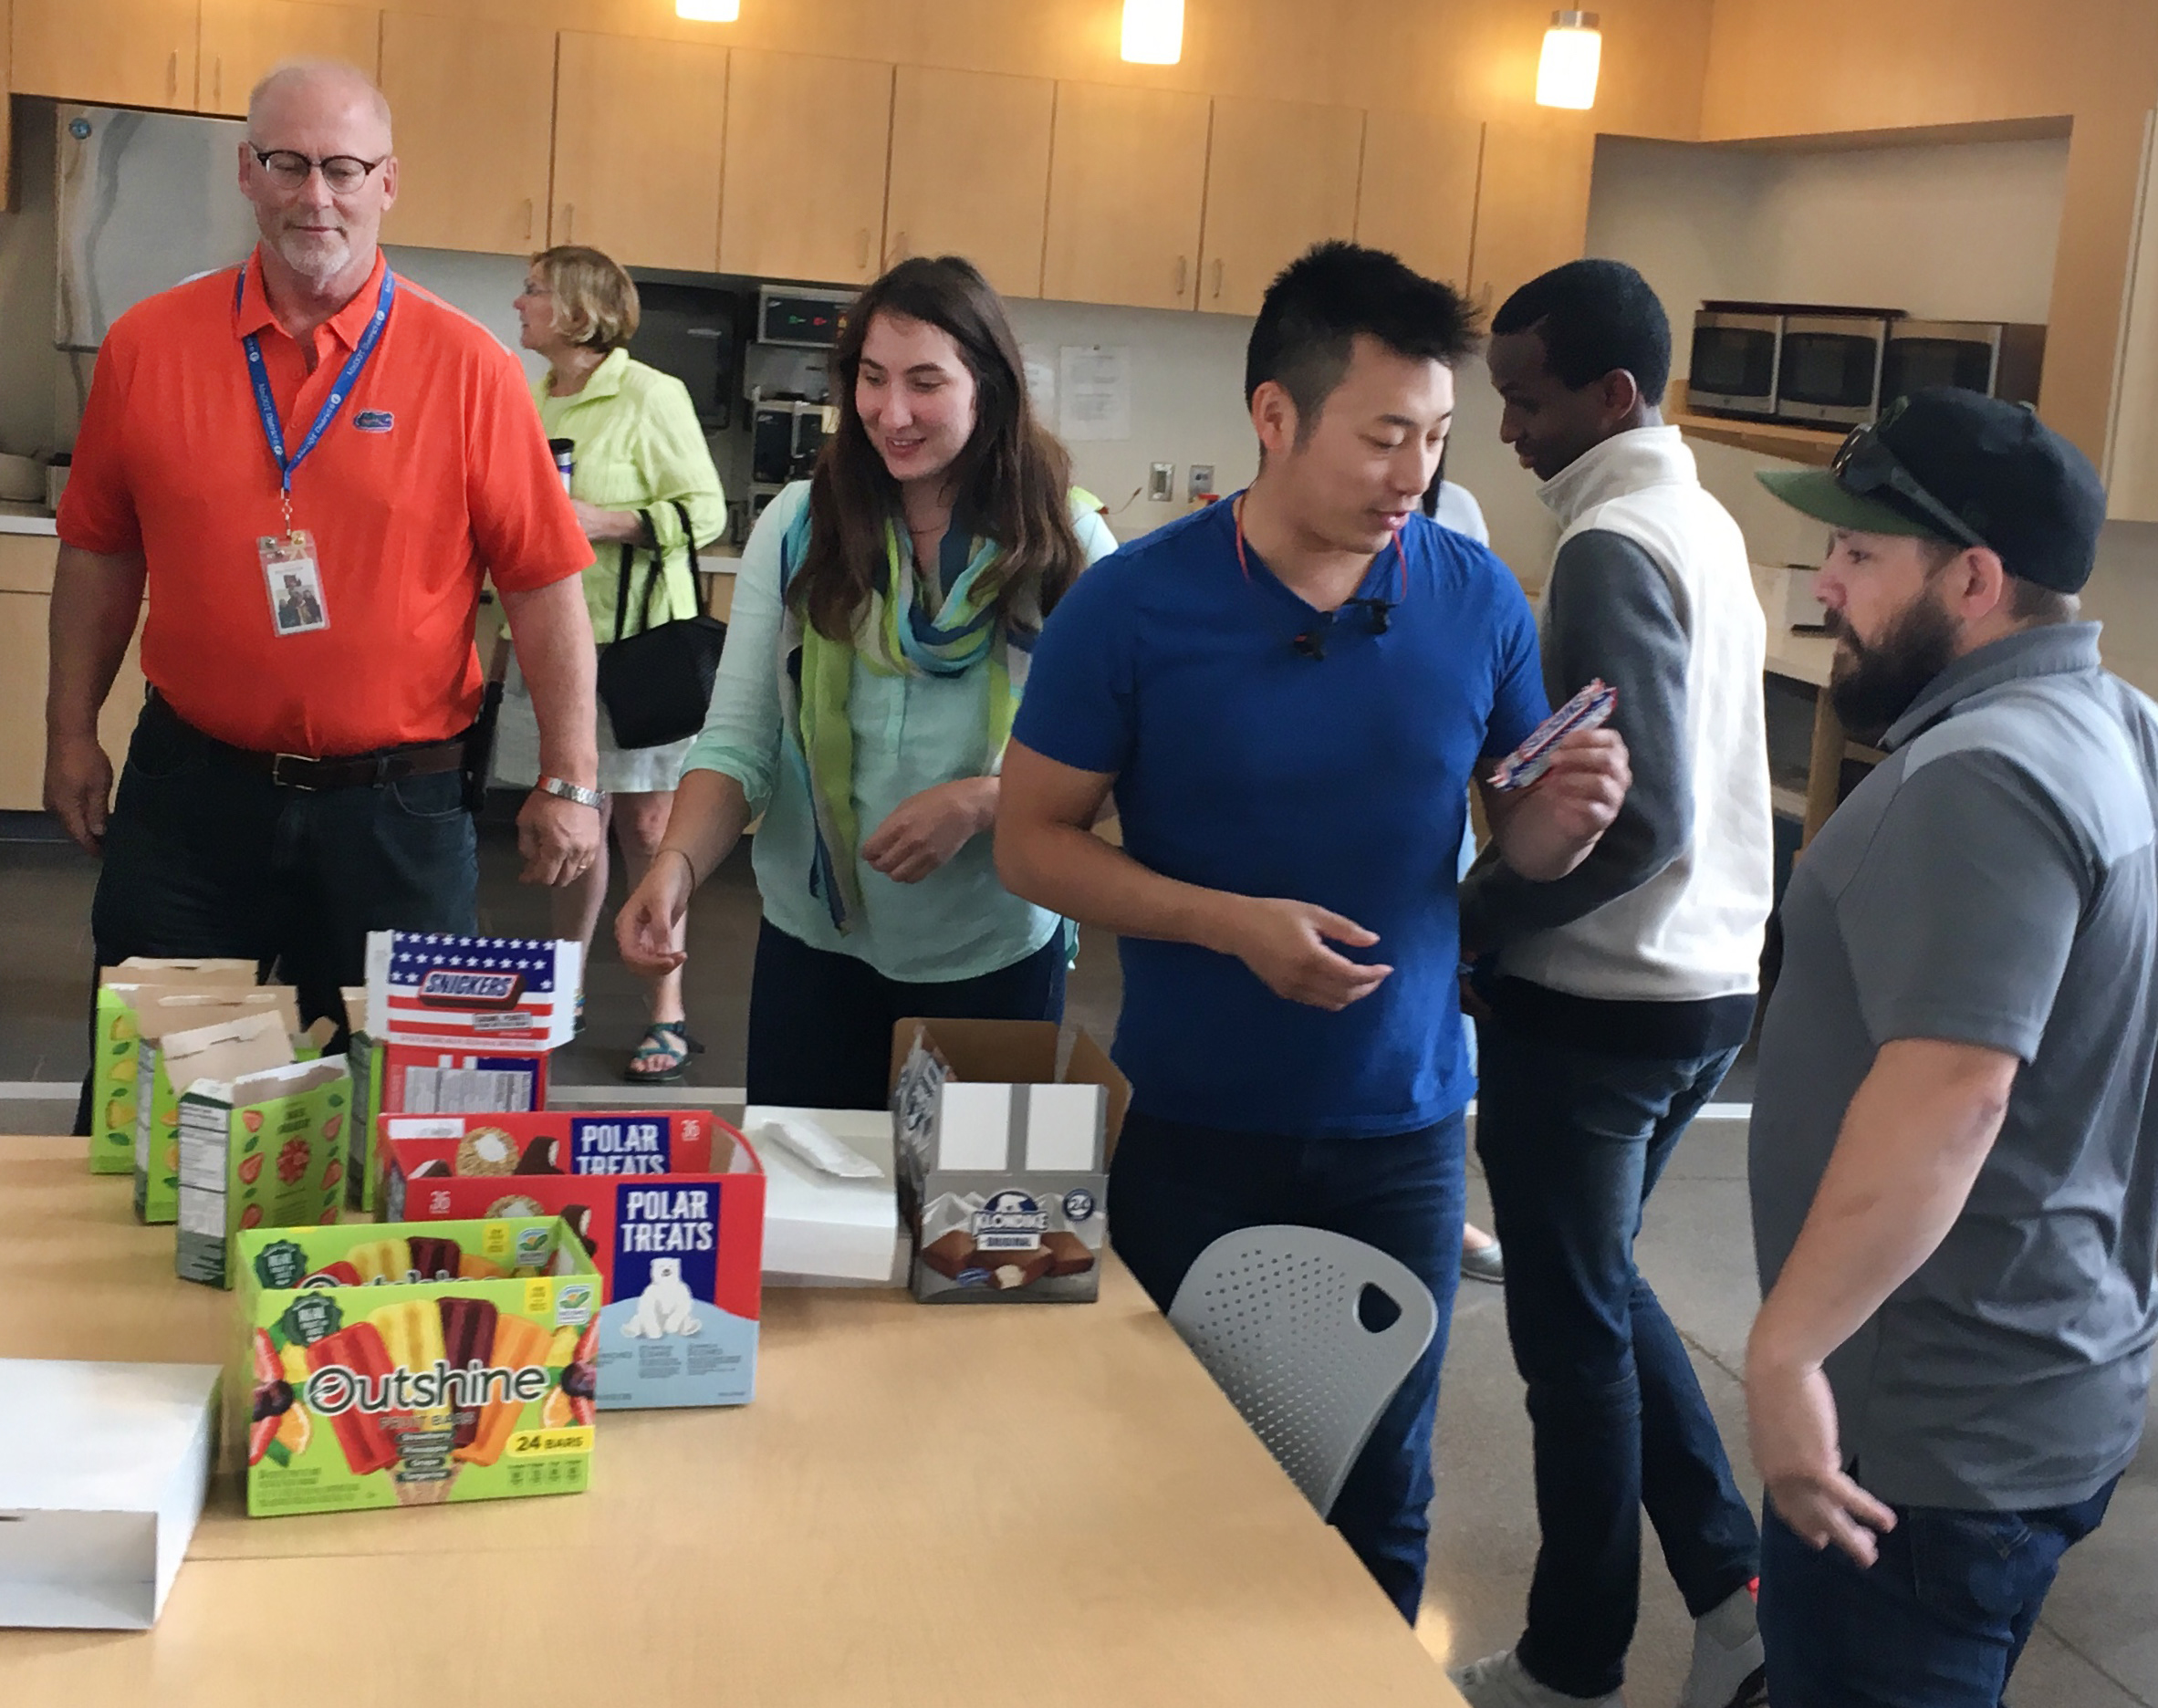 Employees in a break room are taking turns selecting which frozen treat they would like to eat.